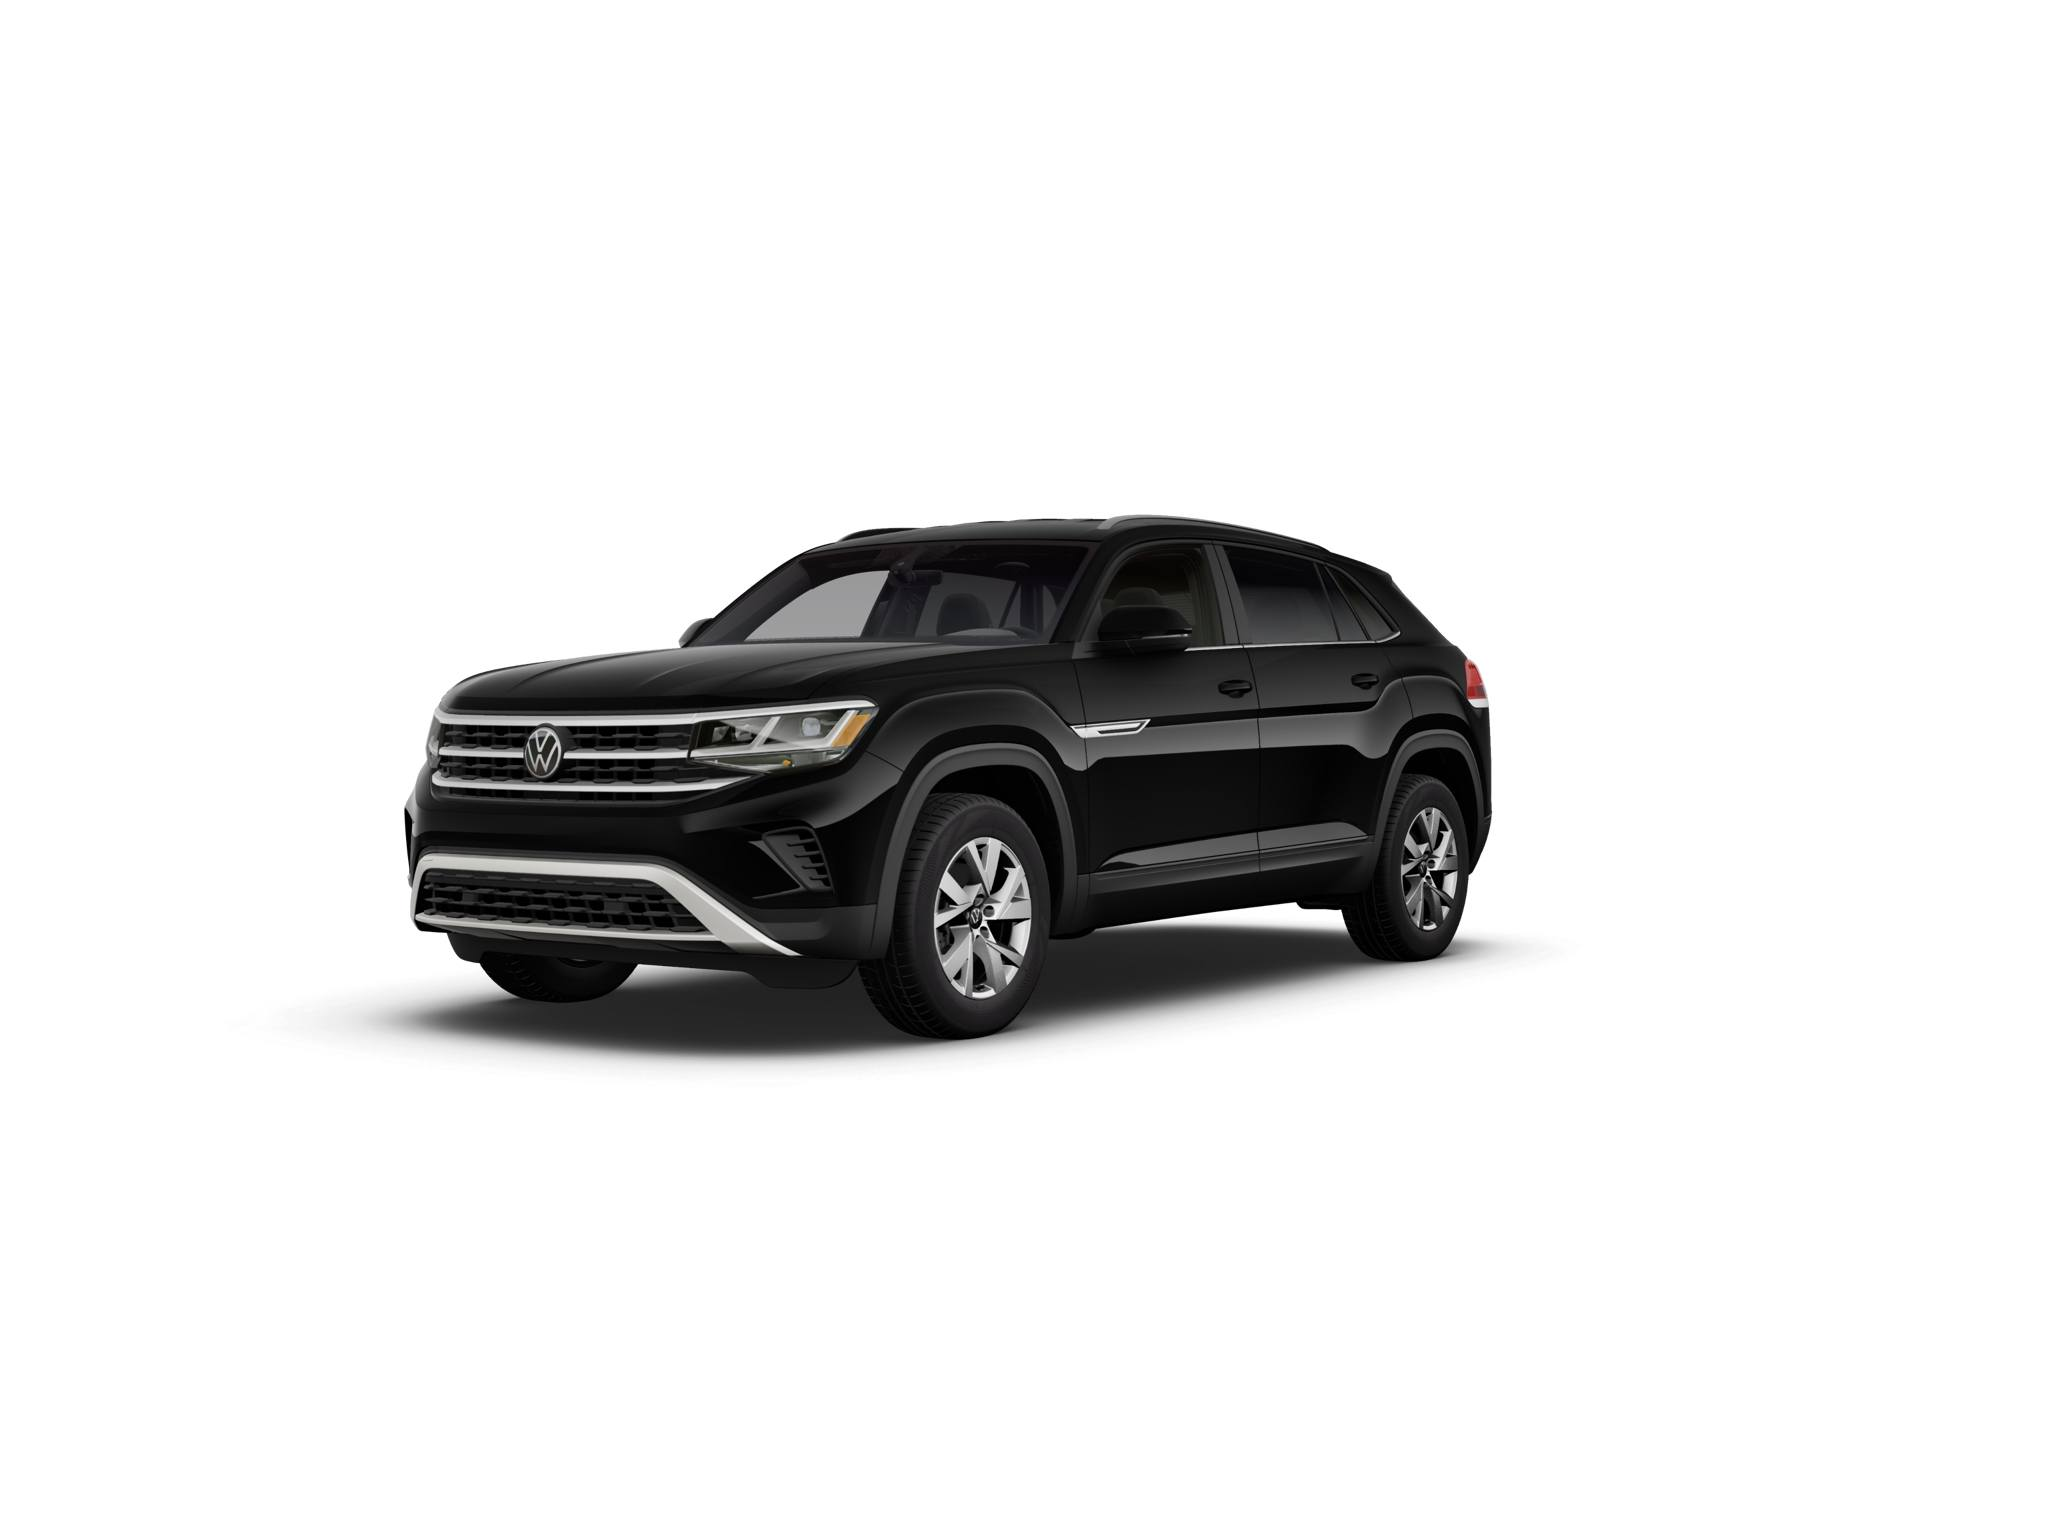 2020 Volkswagen Atlas Cross Sport S configuration